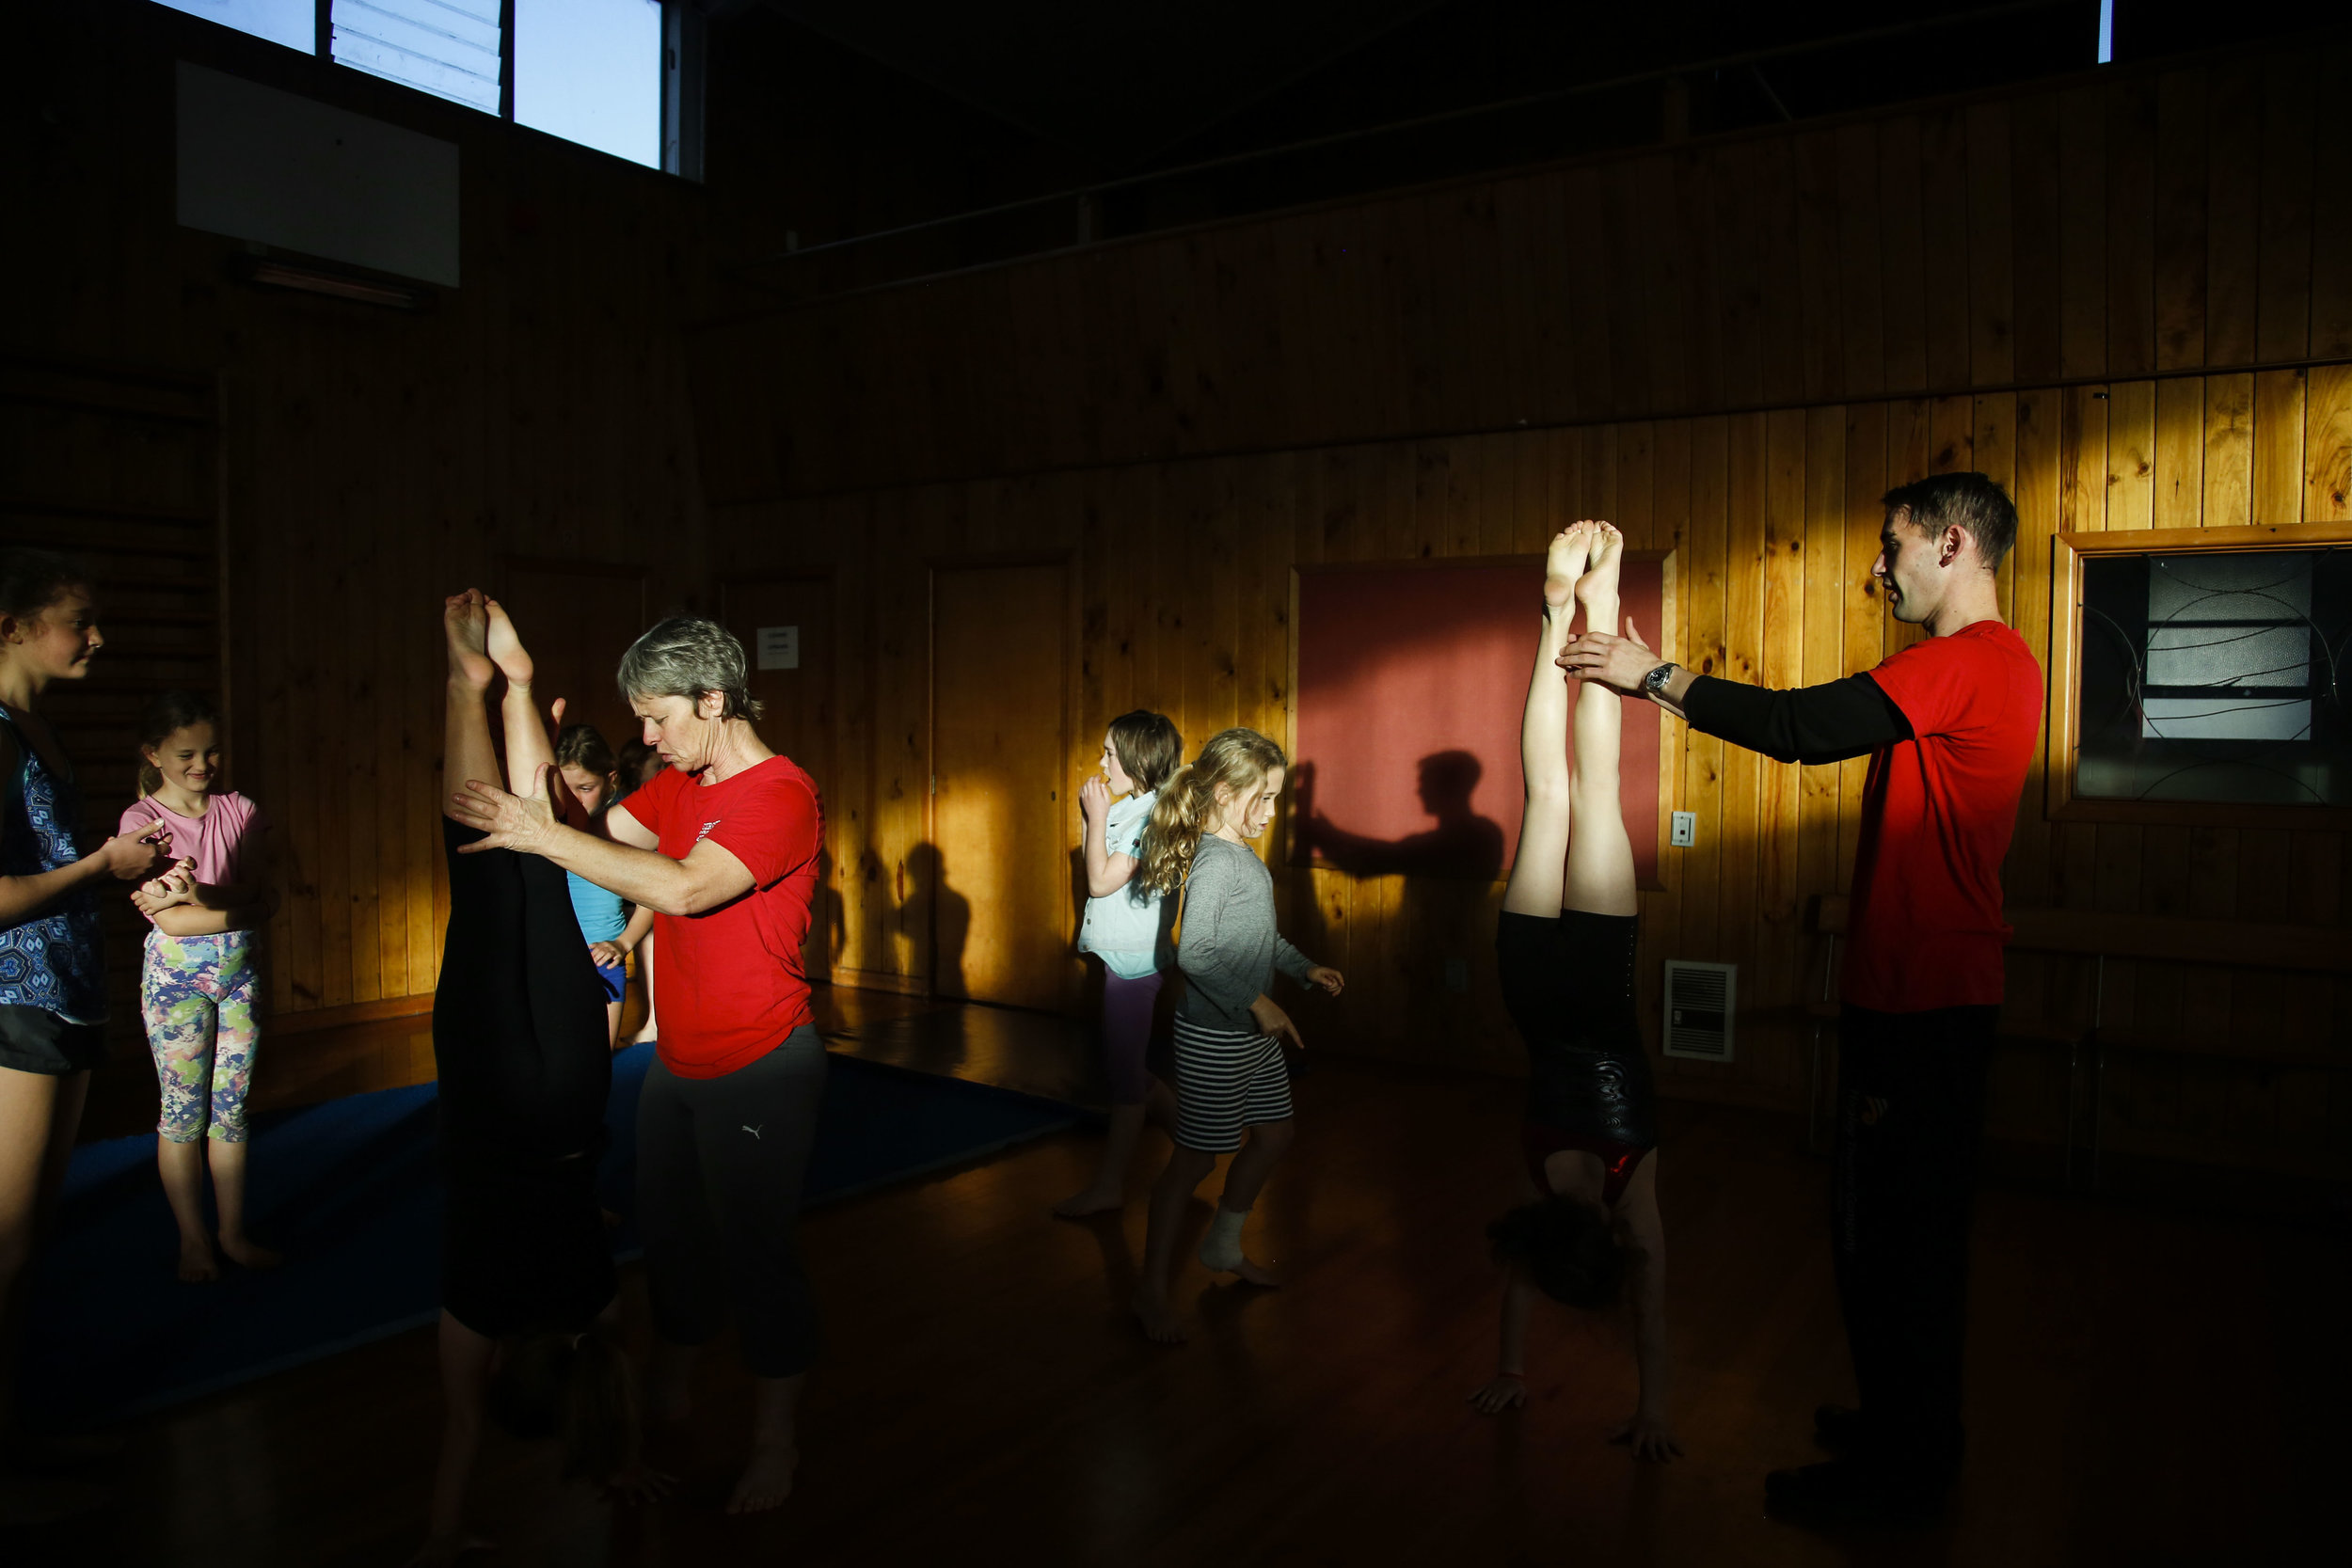 "Wingfield (left) helps a student with her handstands during a class at the Christchurch Circus Centre in Christchurch, NZ on May 10, 2016. Wingfield and Carrow lost their original circus school to the 2011 Christchurch Earthquake. ""We lost our circus school and started doing community circus workshops in town. But then that building had to get demolitioned as well. So we had to find a new venue. Luckily enough, Chris is really good at hunting for stuff."""